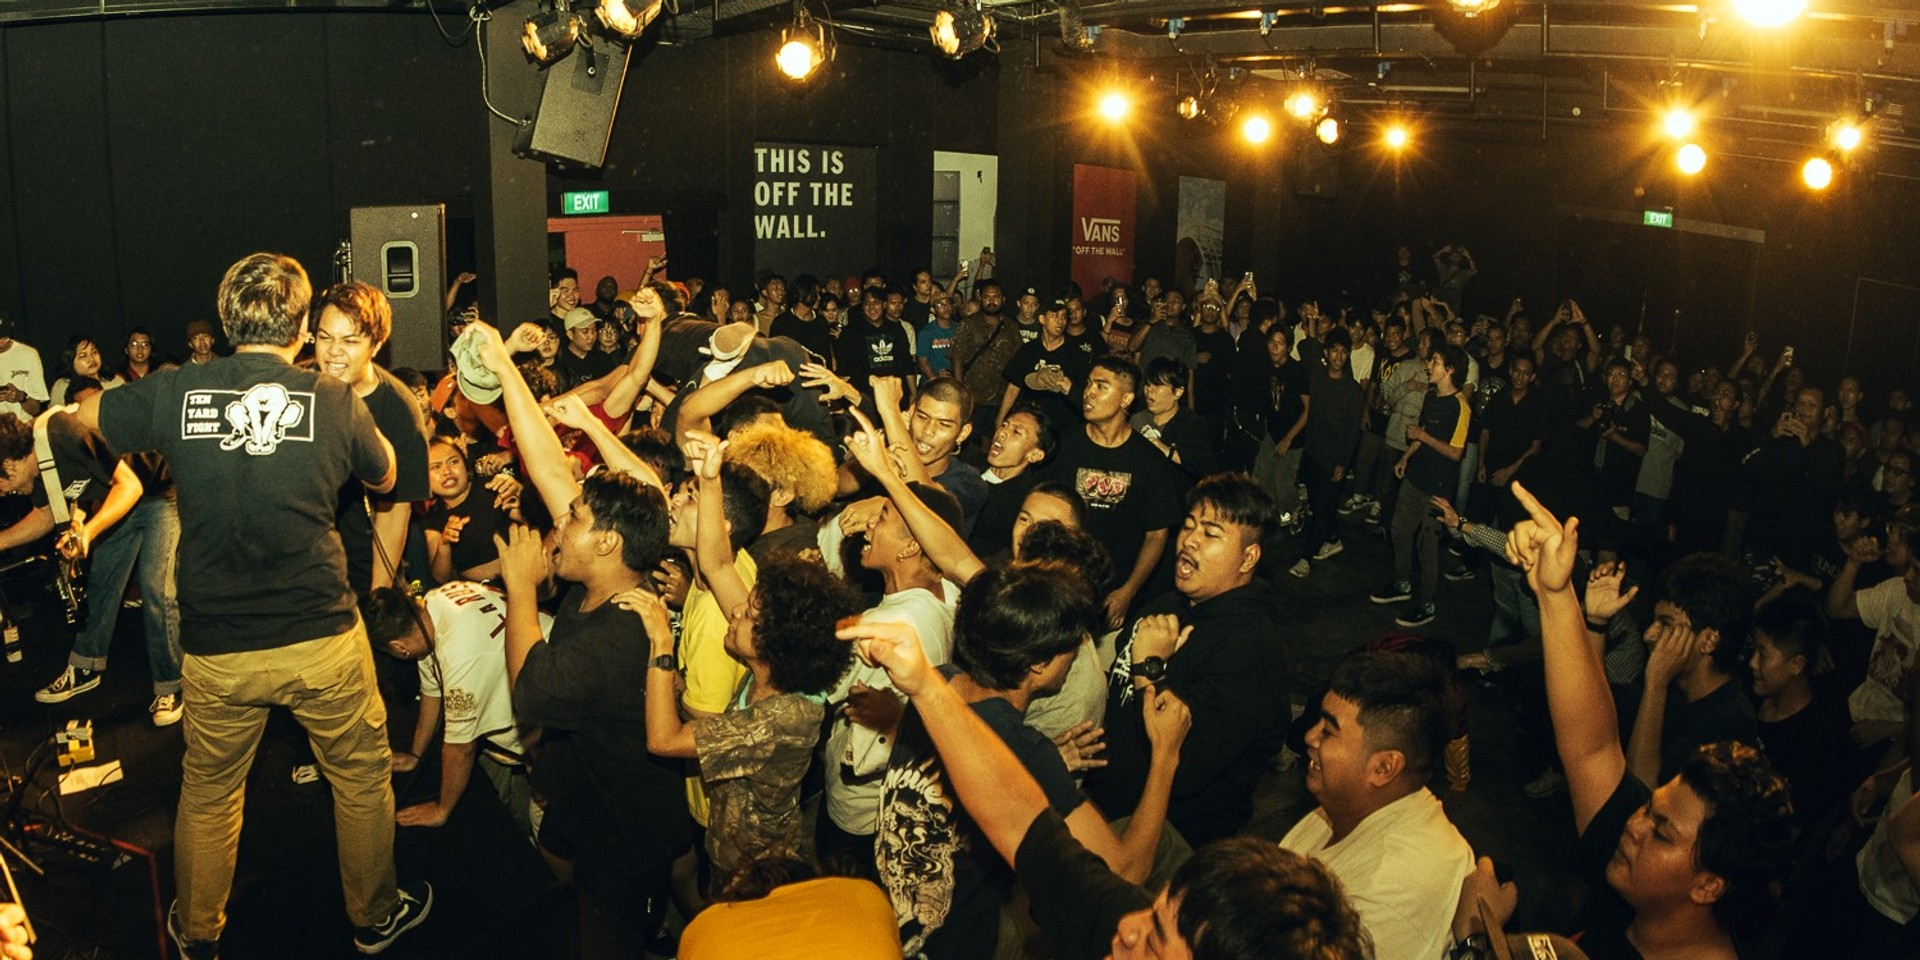 The story of Vans Musicians Wanted: how a music competition became a movement to support local music scenes in Asia